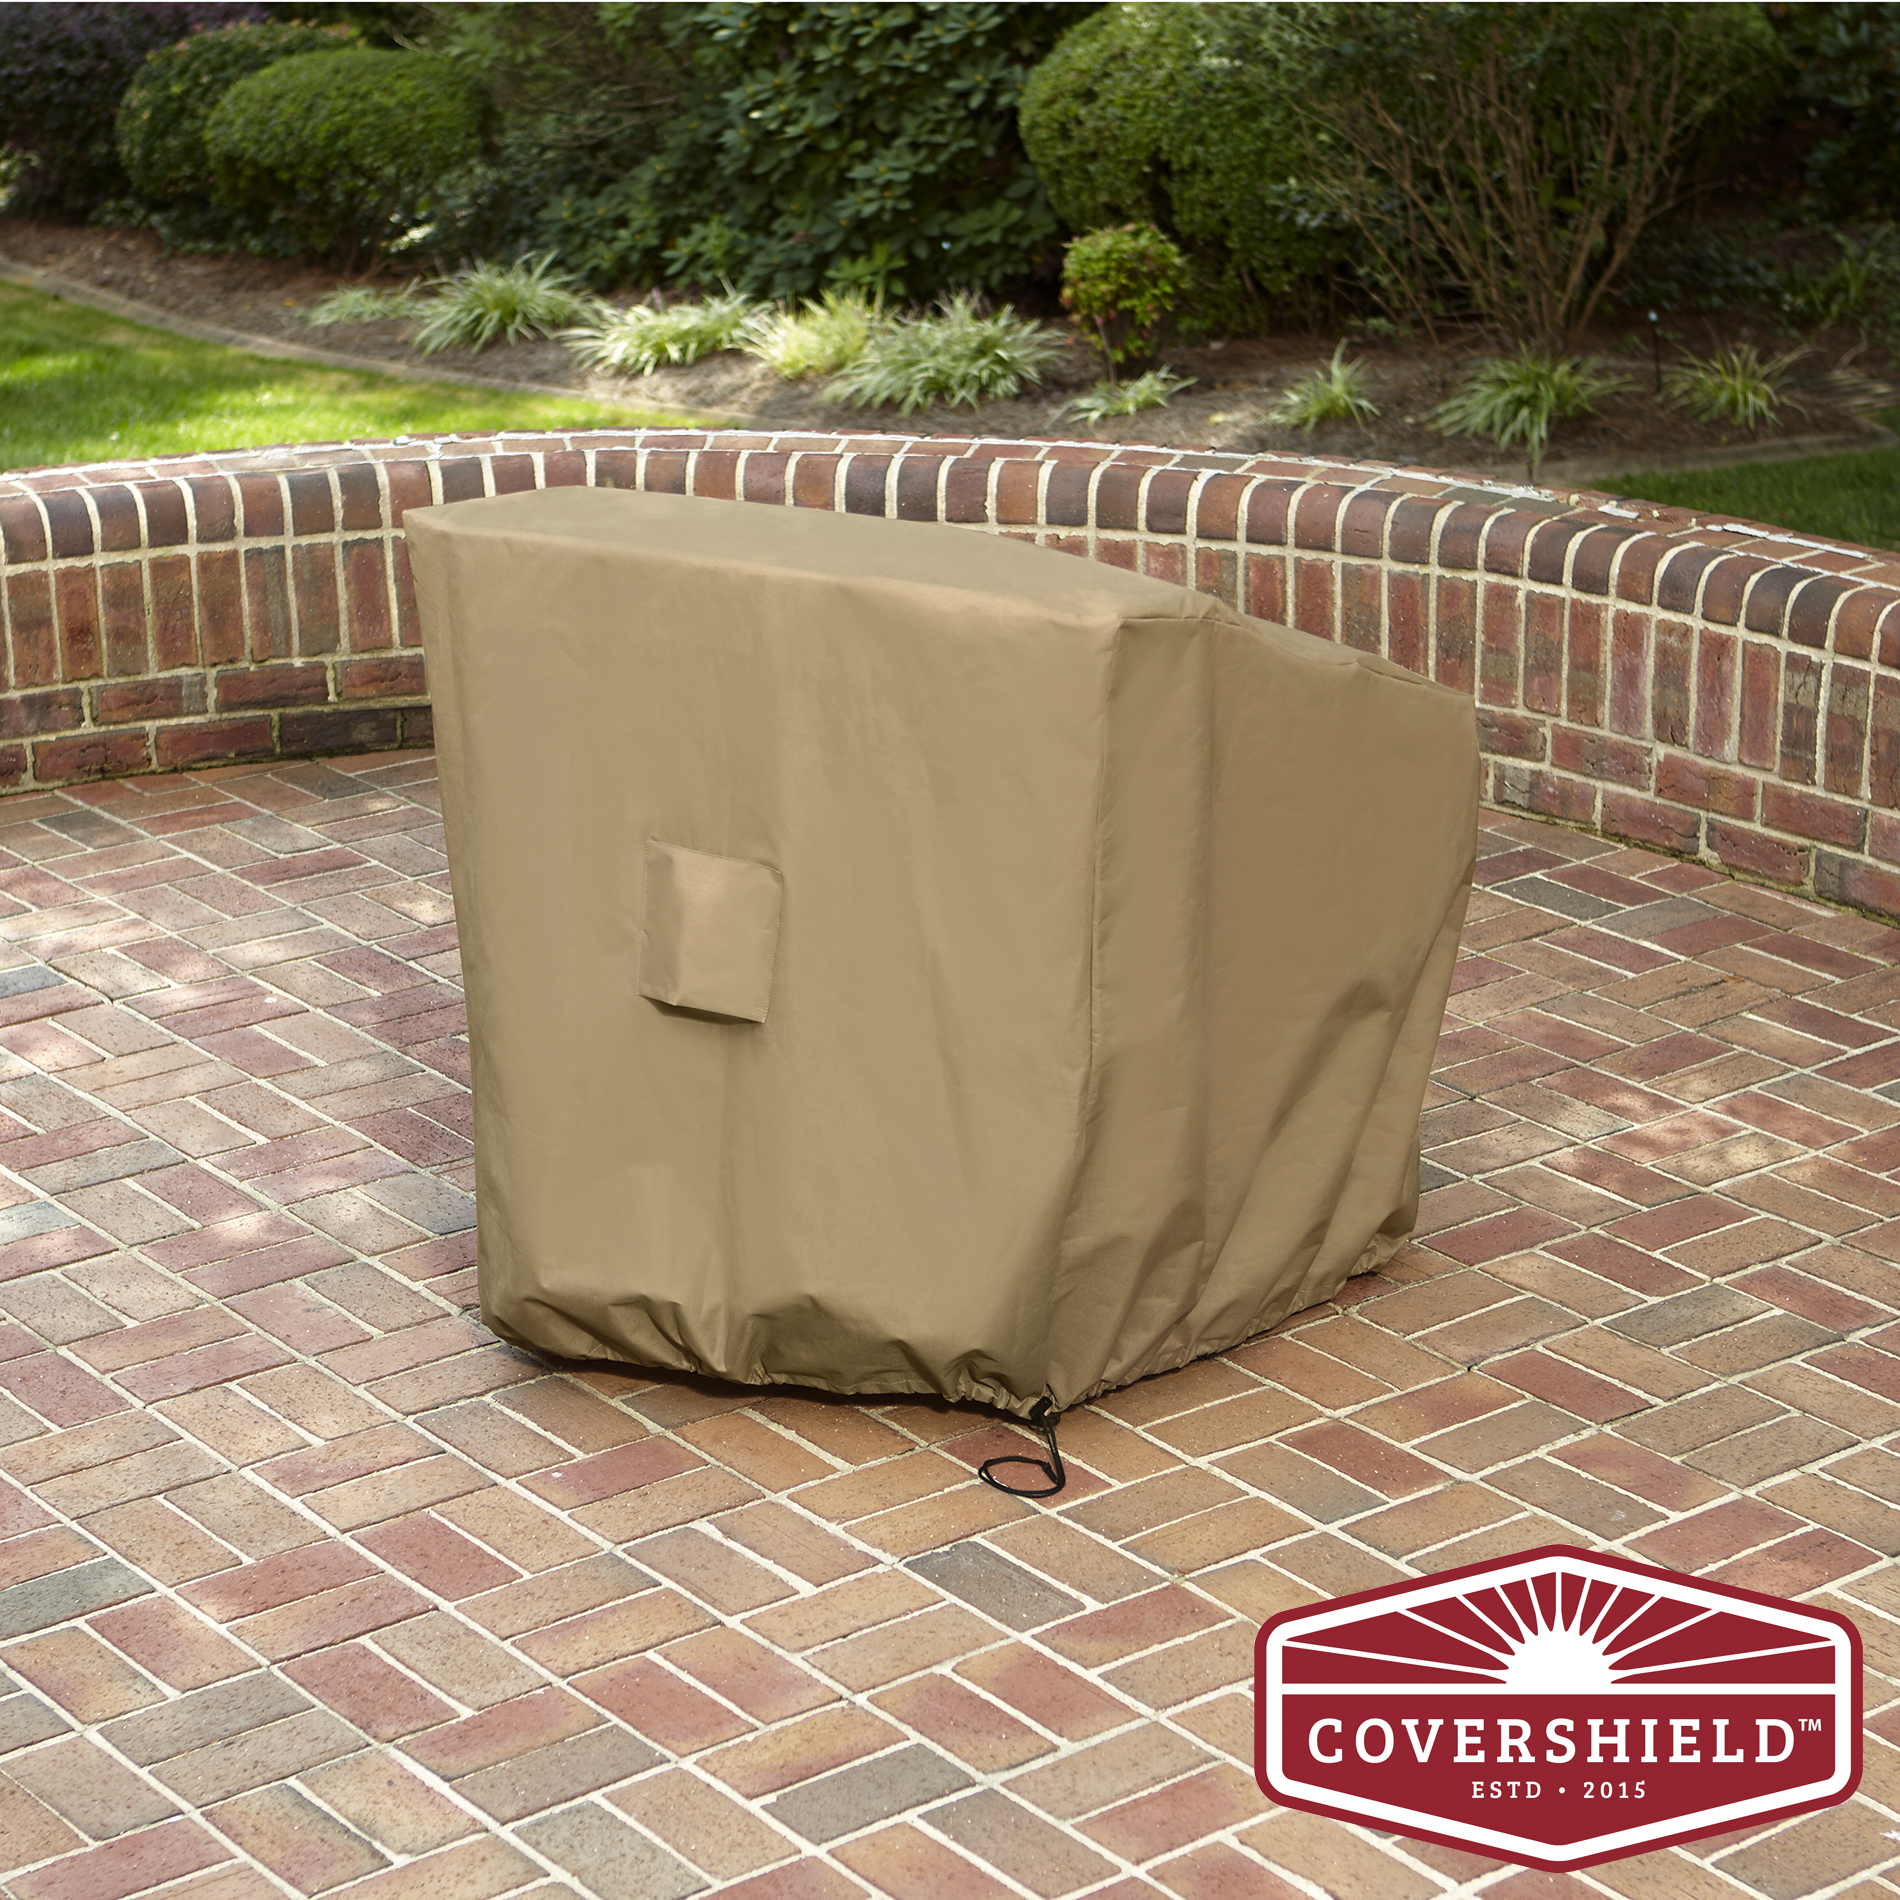 outdoor chair covers for sale little kids table and chairs covershield lounge cover deluxe living